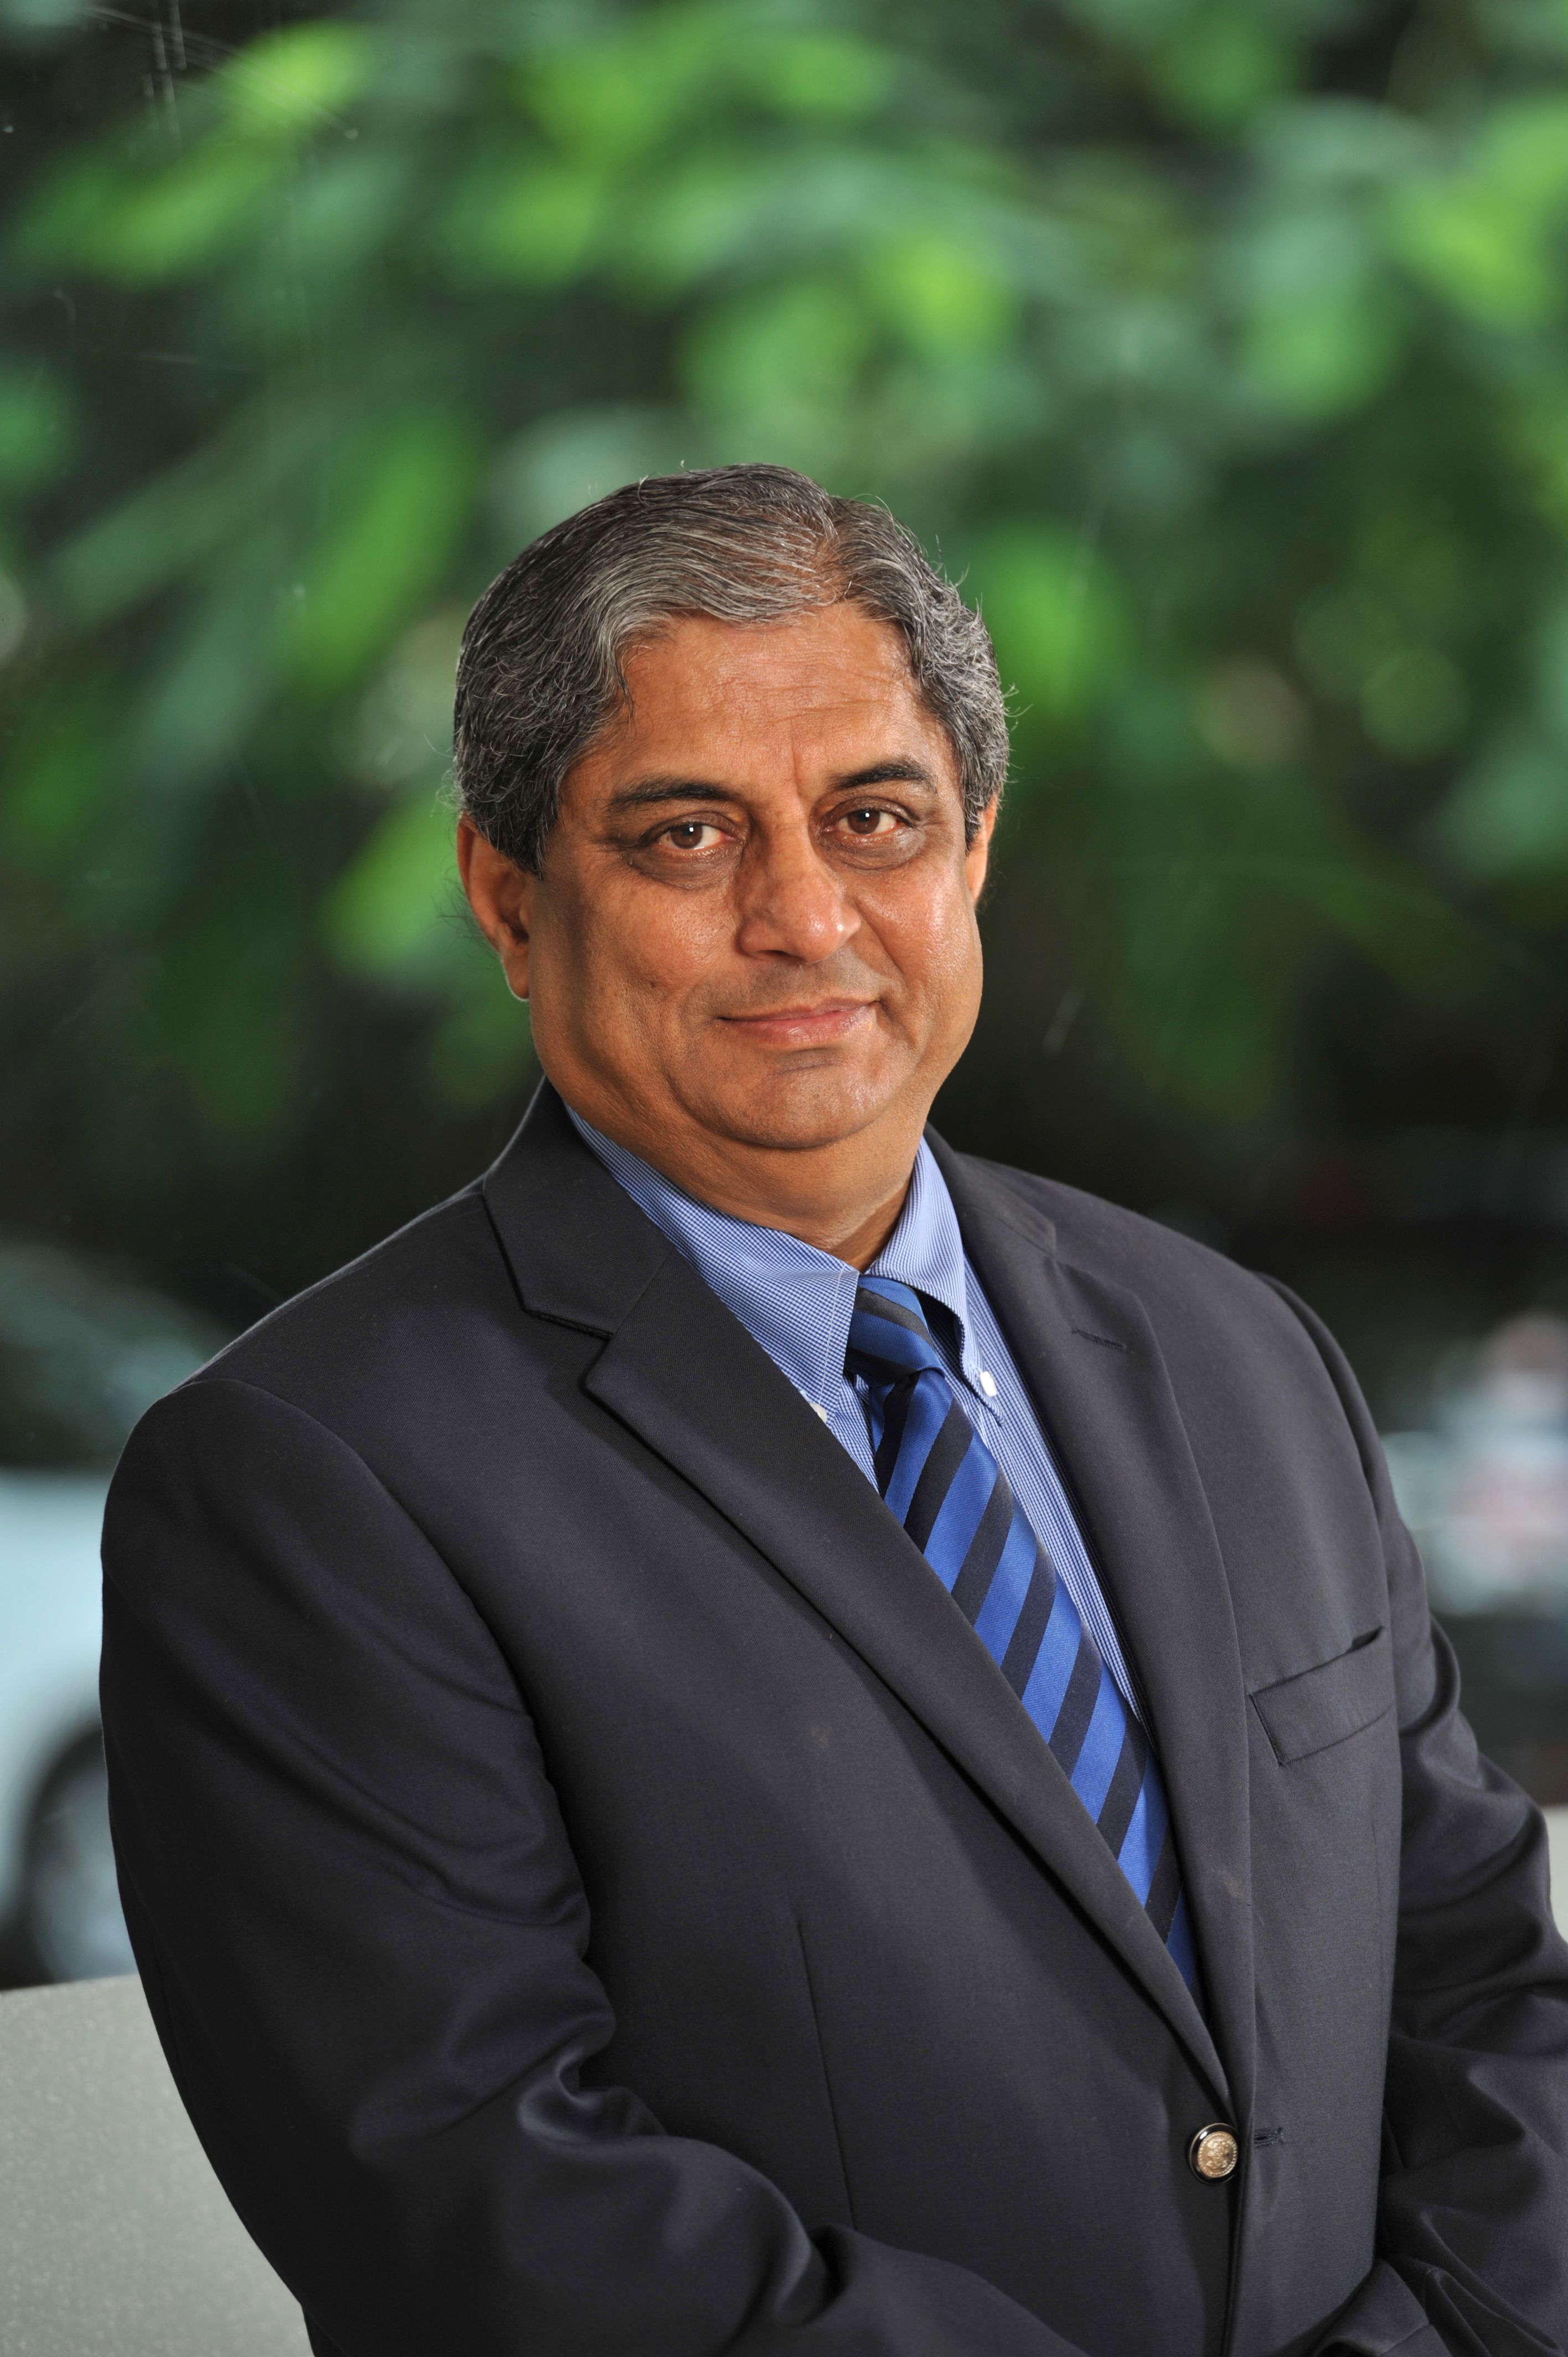 For Aditya Puri, the key lesson was that fintechs were not reinventing a bank, they were just riding on the platform of the banks with sophisticated apps